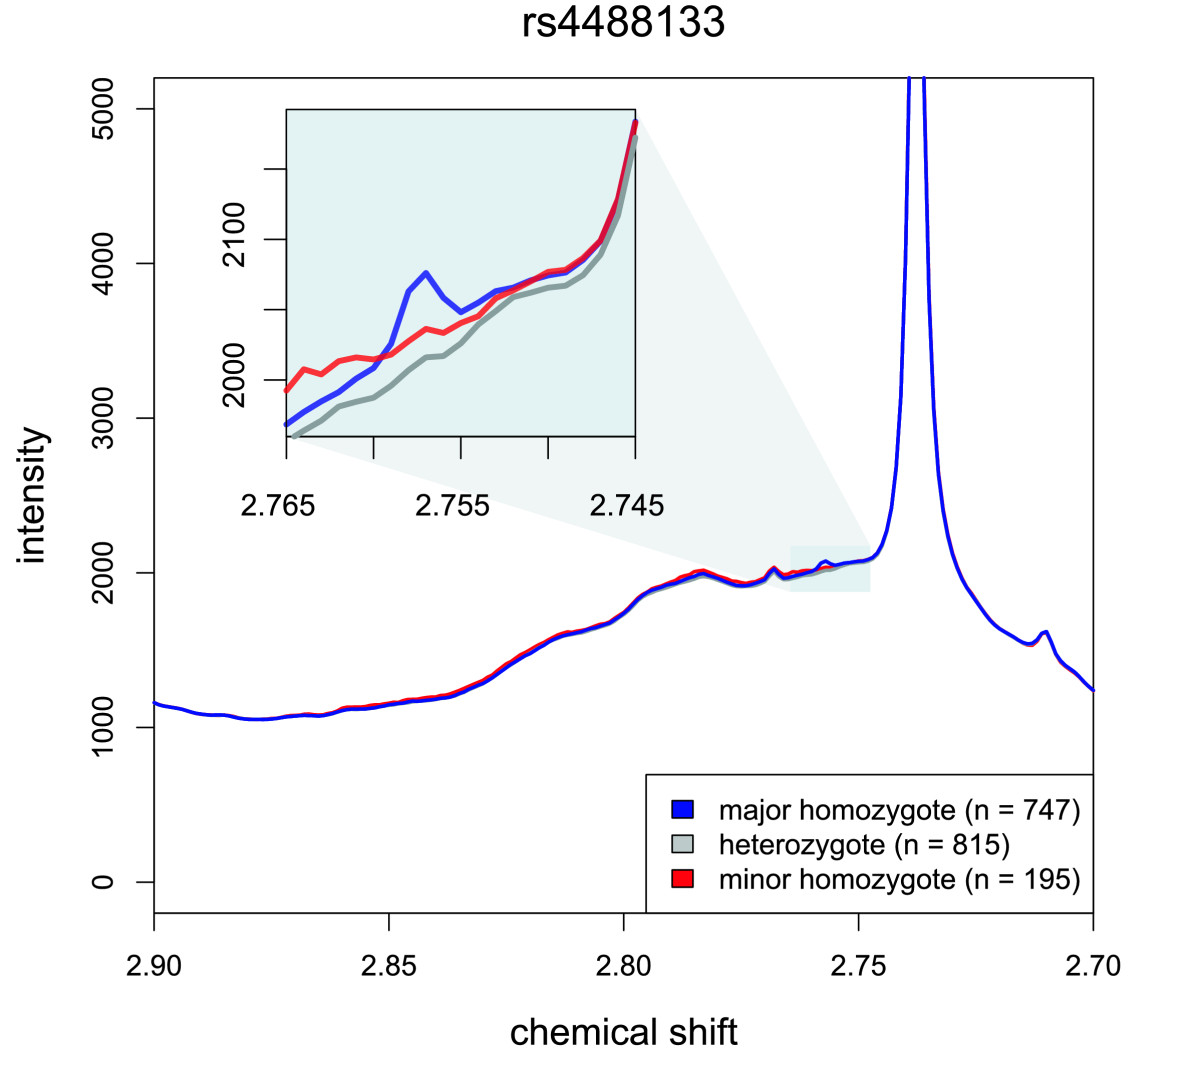 https://static-content.springer.com/image/art%3A10.1186%2Fgm417/MediaObjects/13073_2012_Article_443_Fig4_HTML.jpg